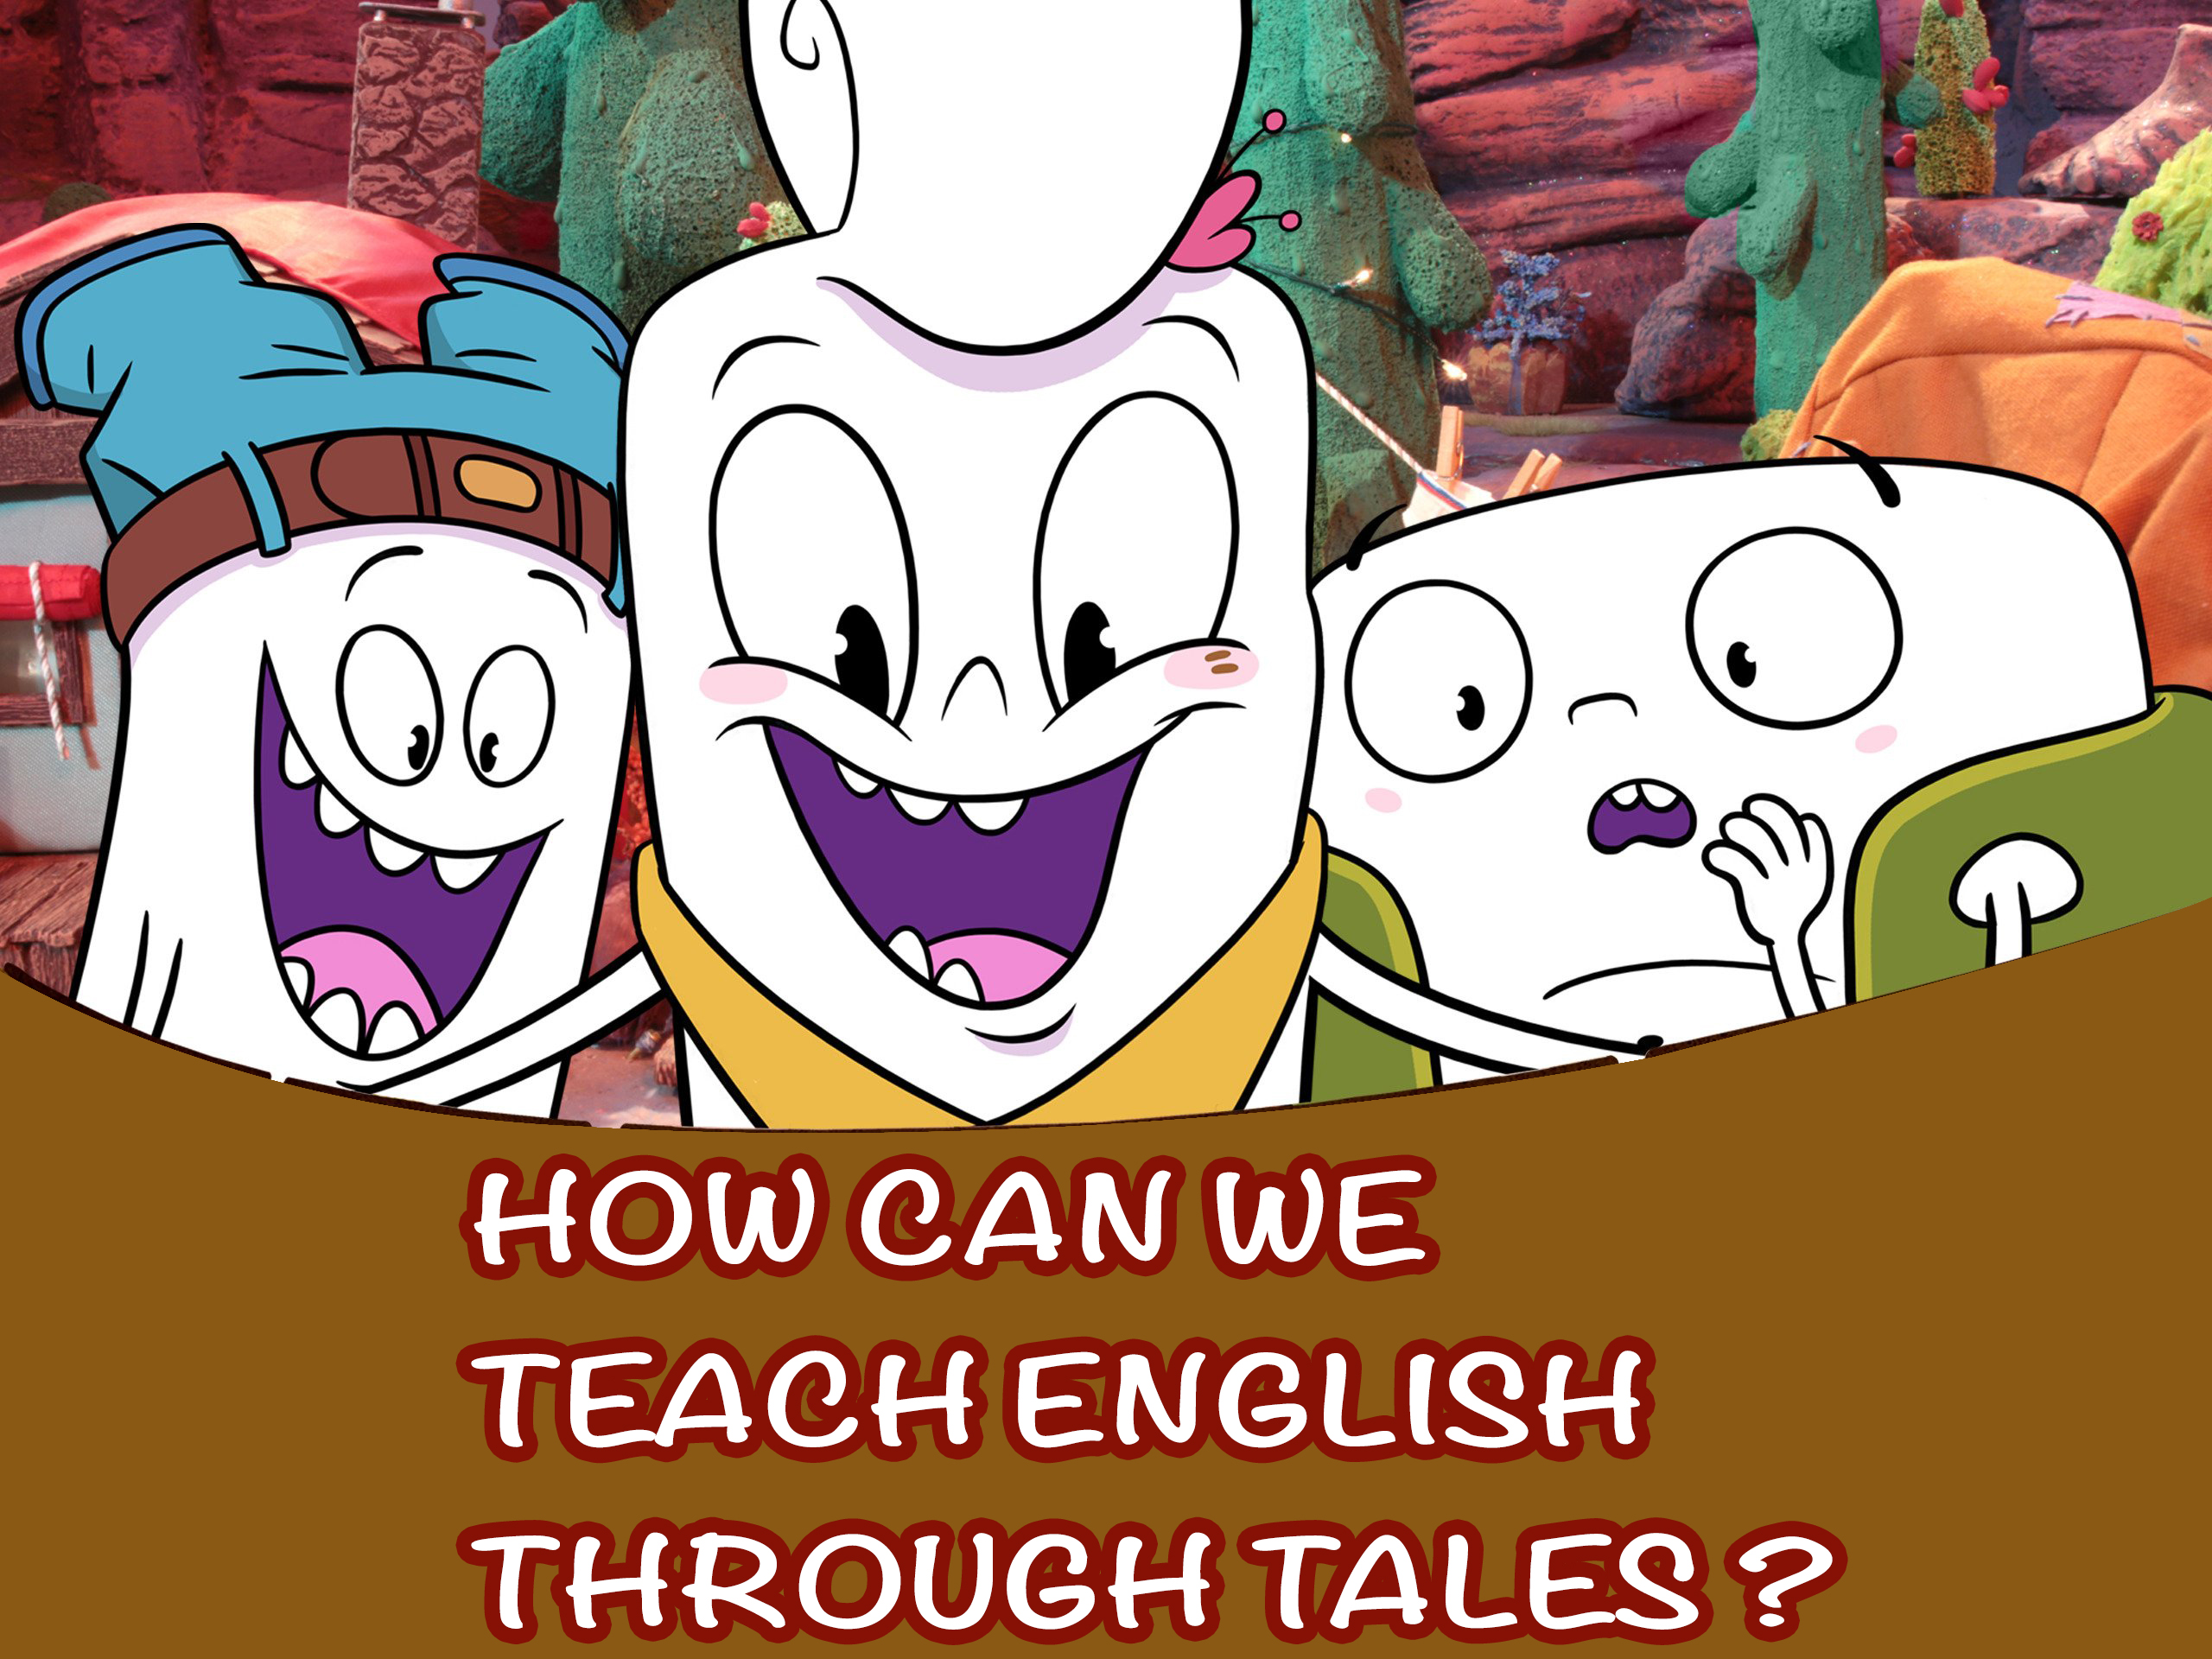 Teaching English Through Tales